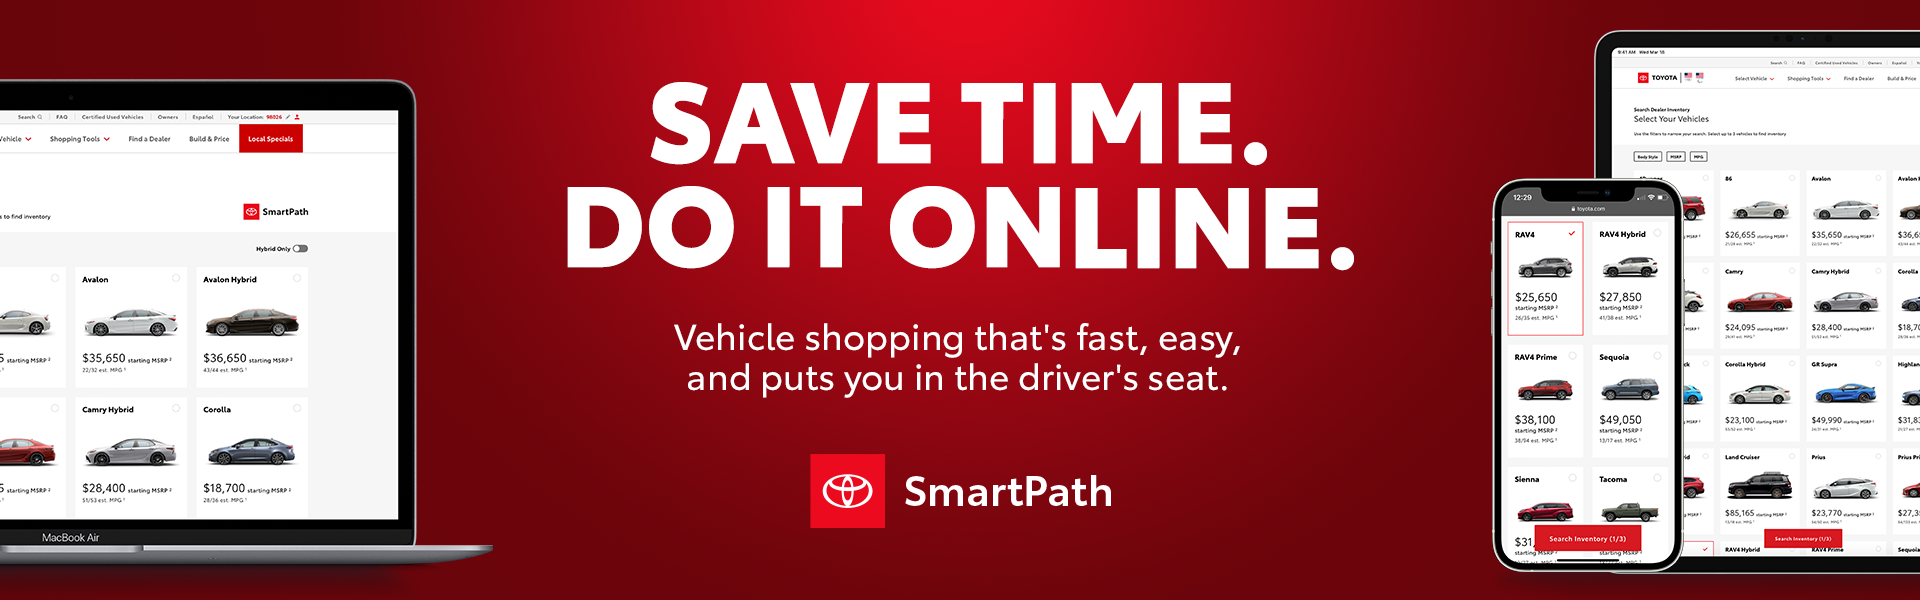 Save Time, Do It Online